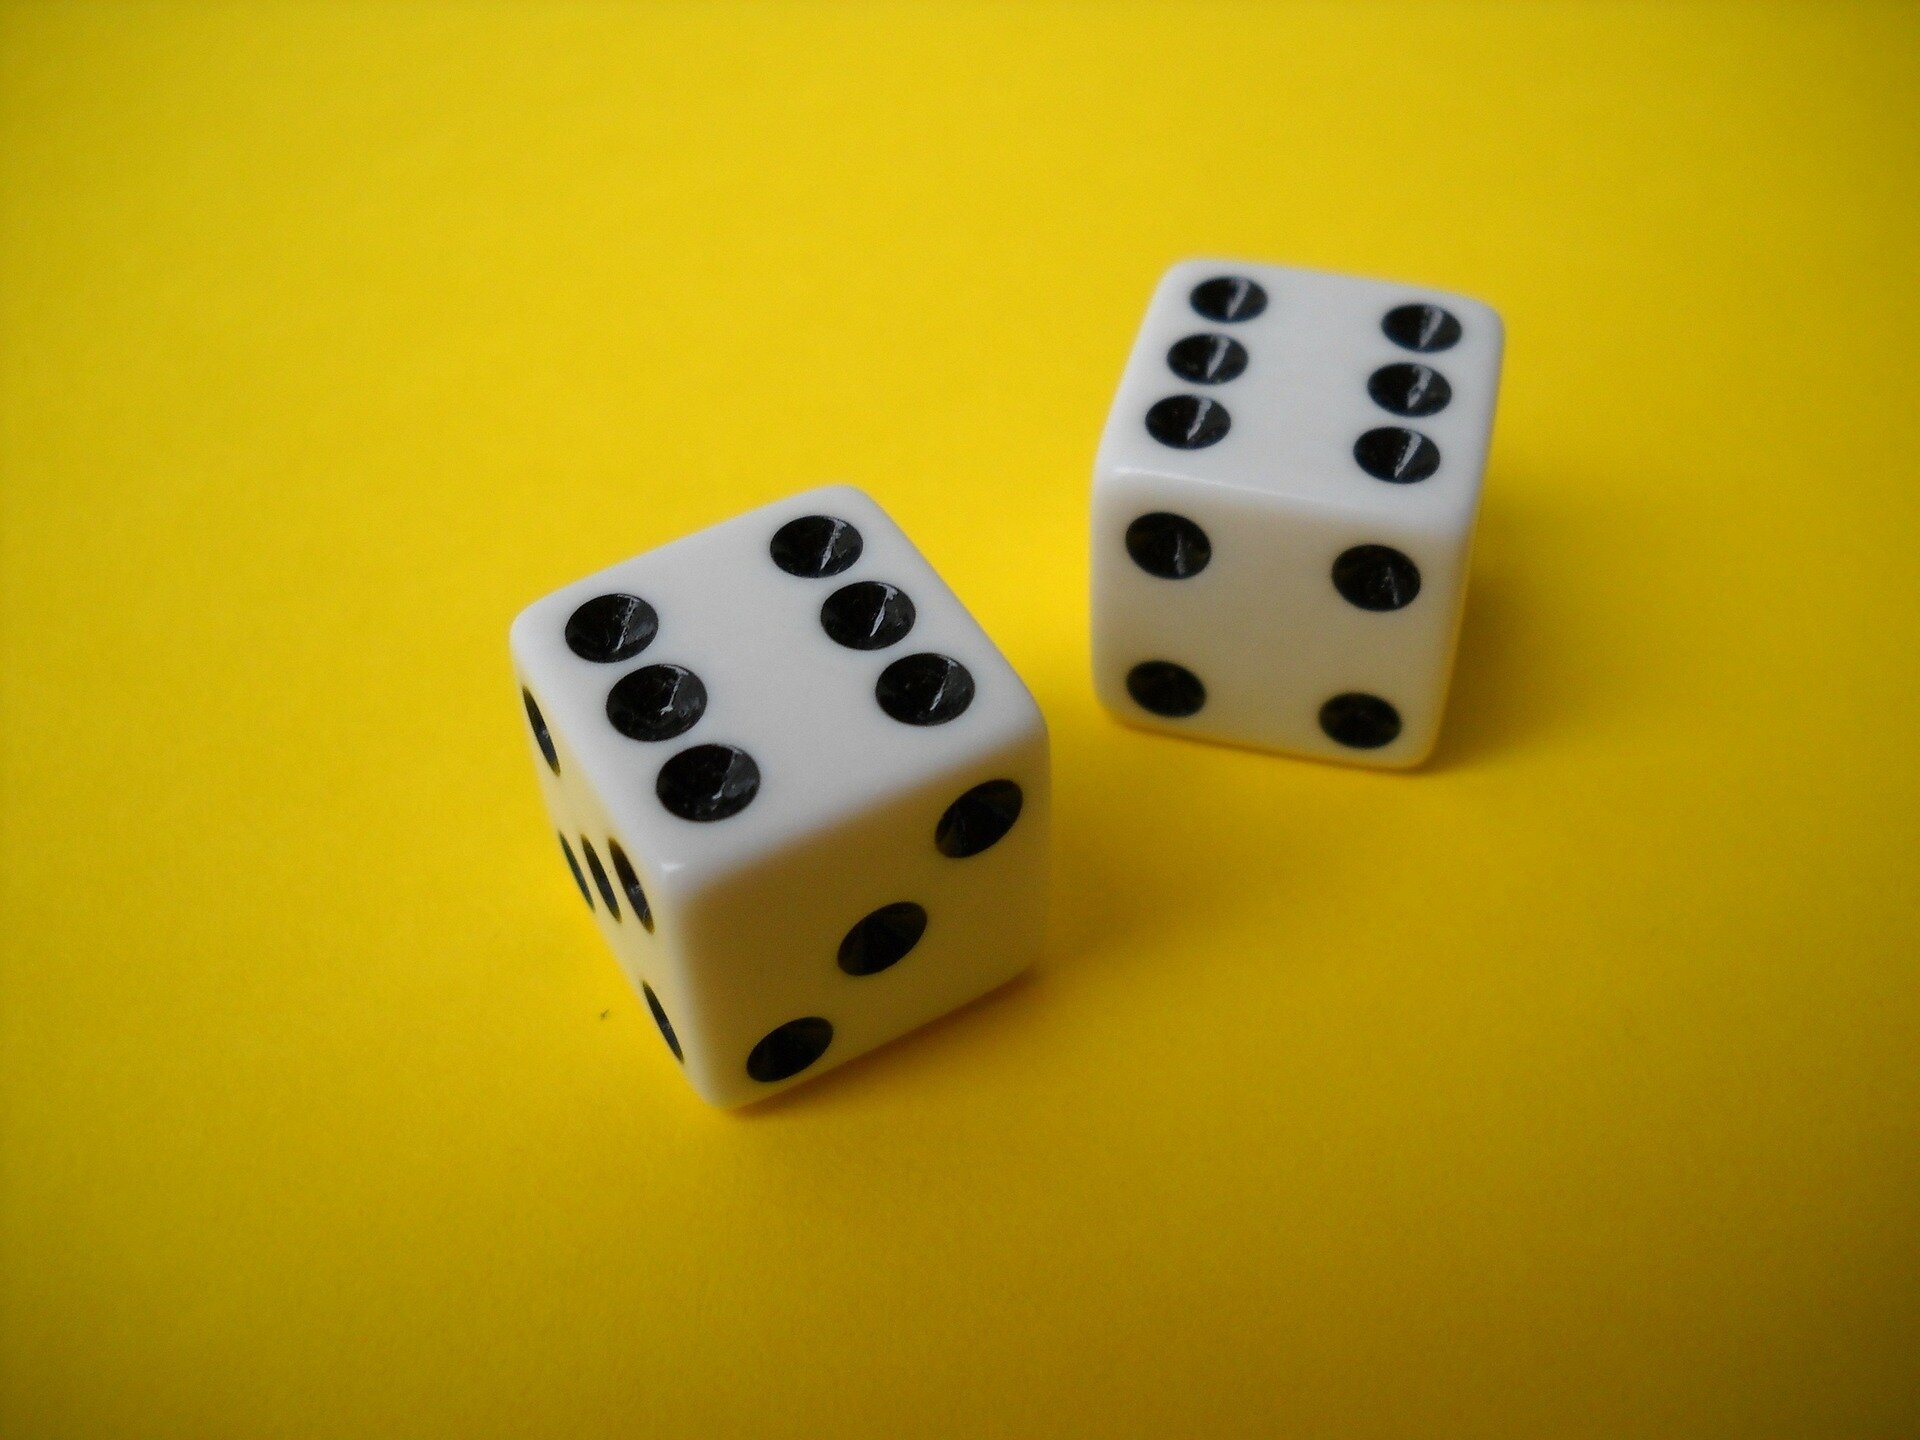 two dice on yellow background